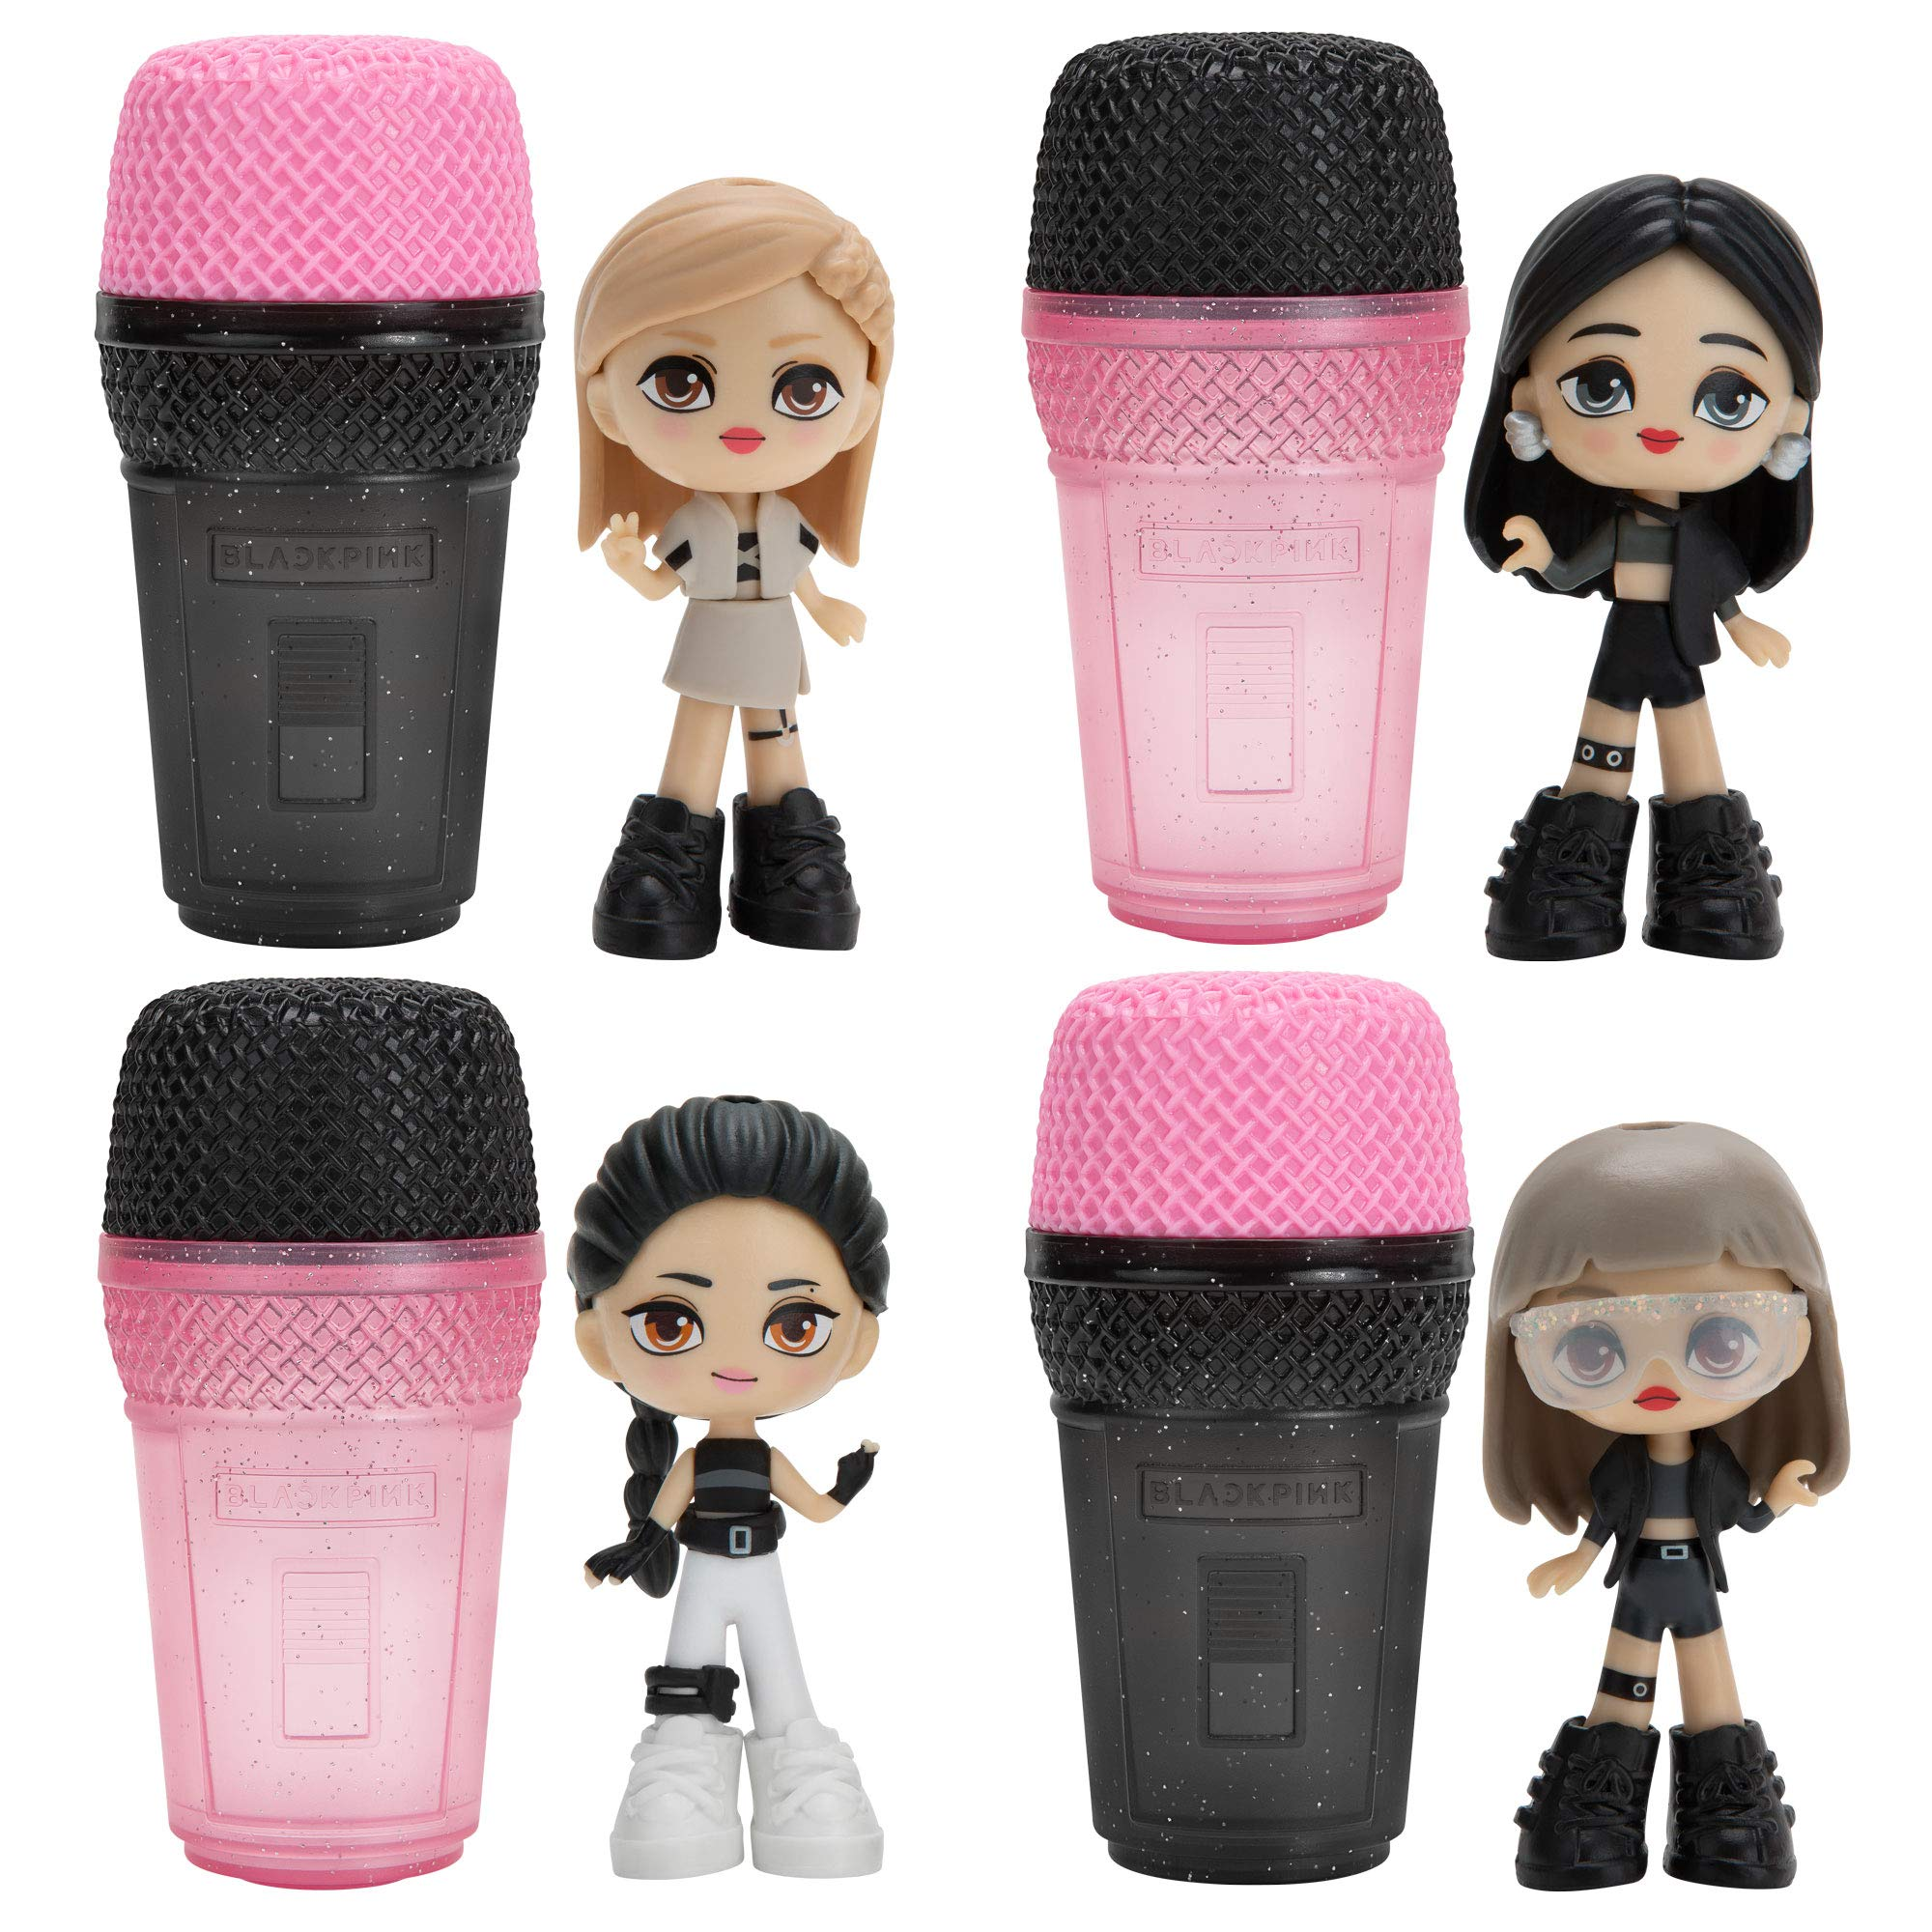 Awesome Jazwares Blackpink Australia wallpapers to download for free greenvirals